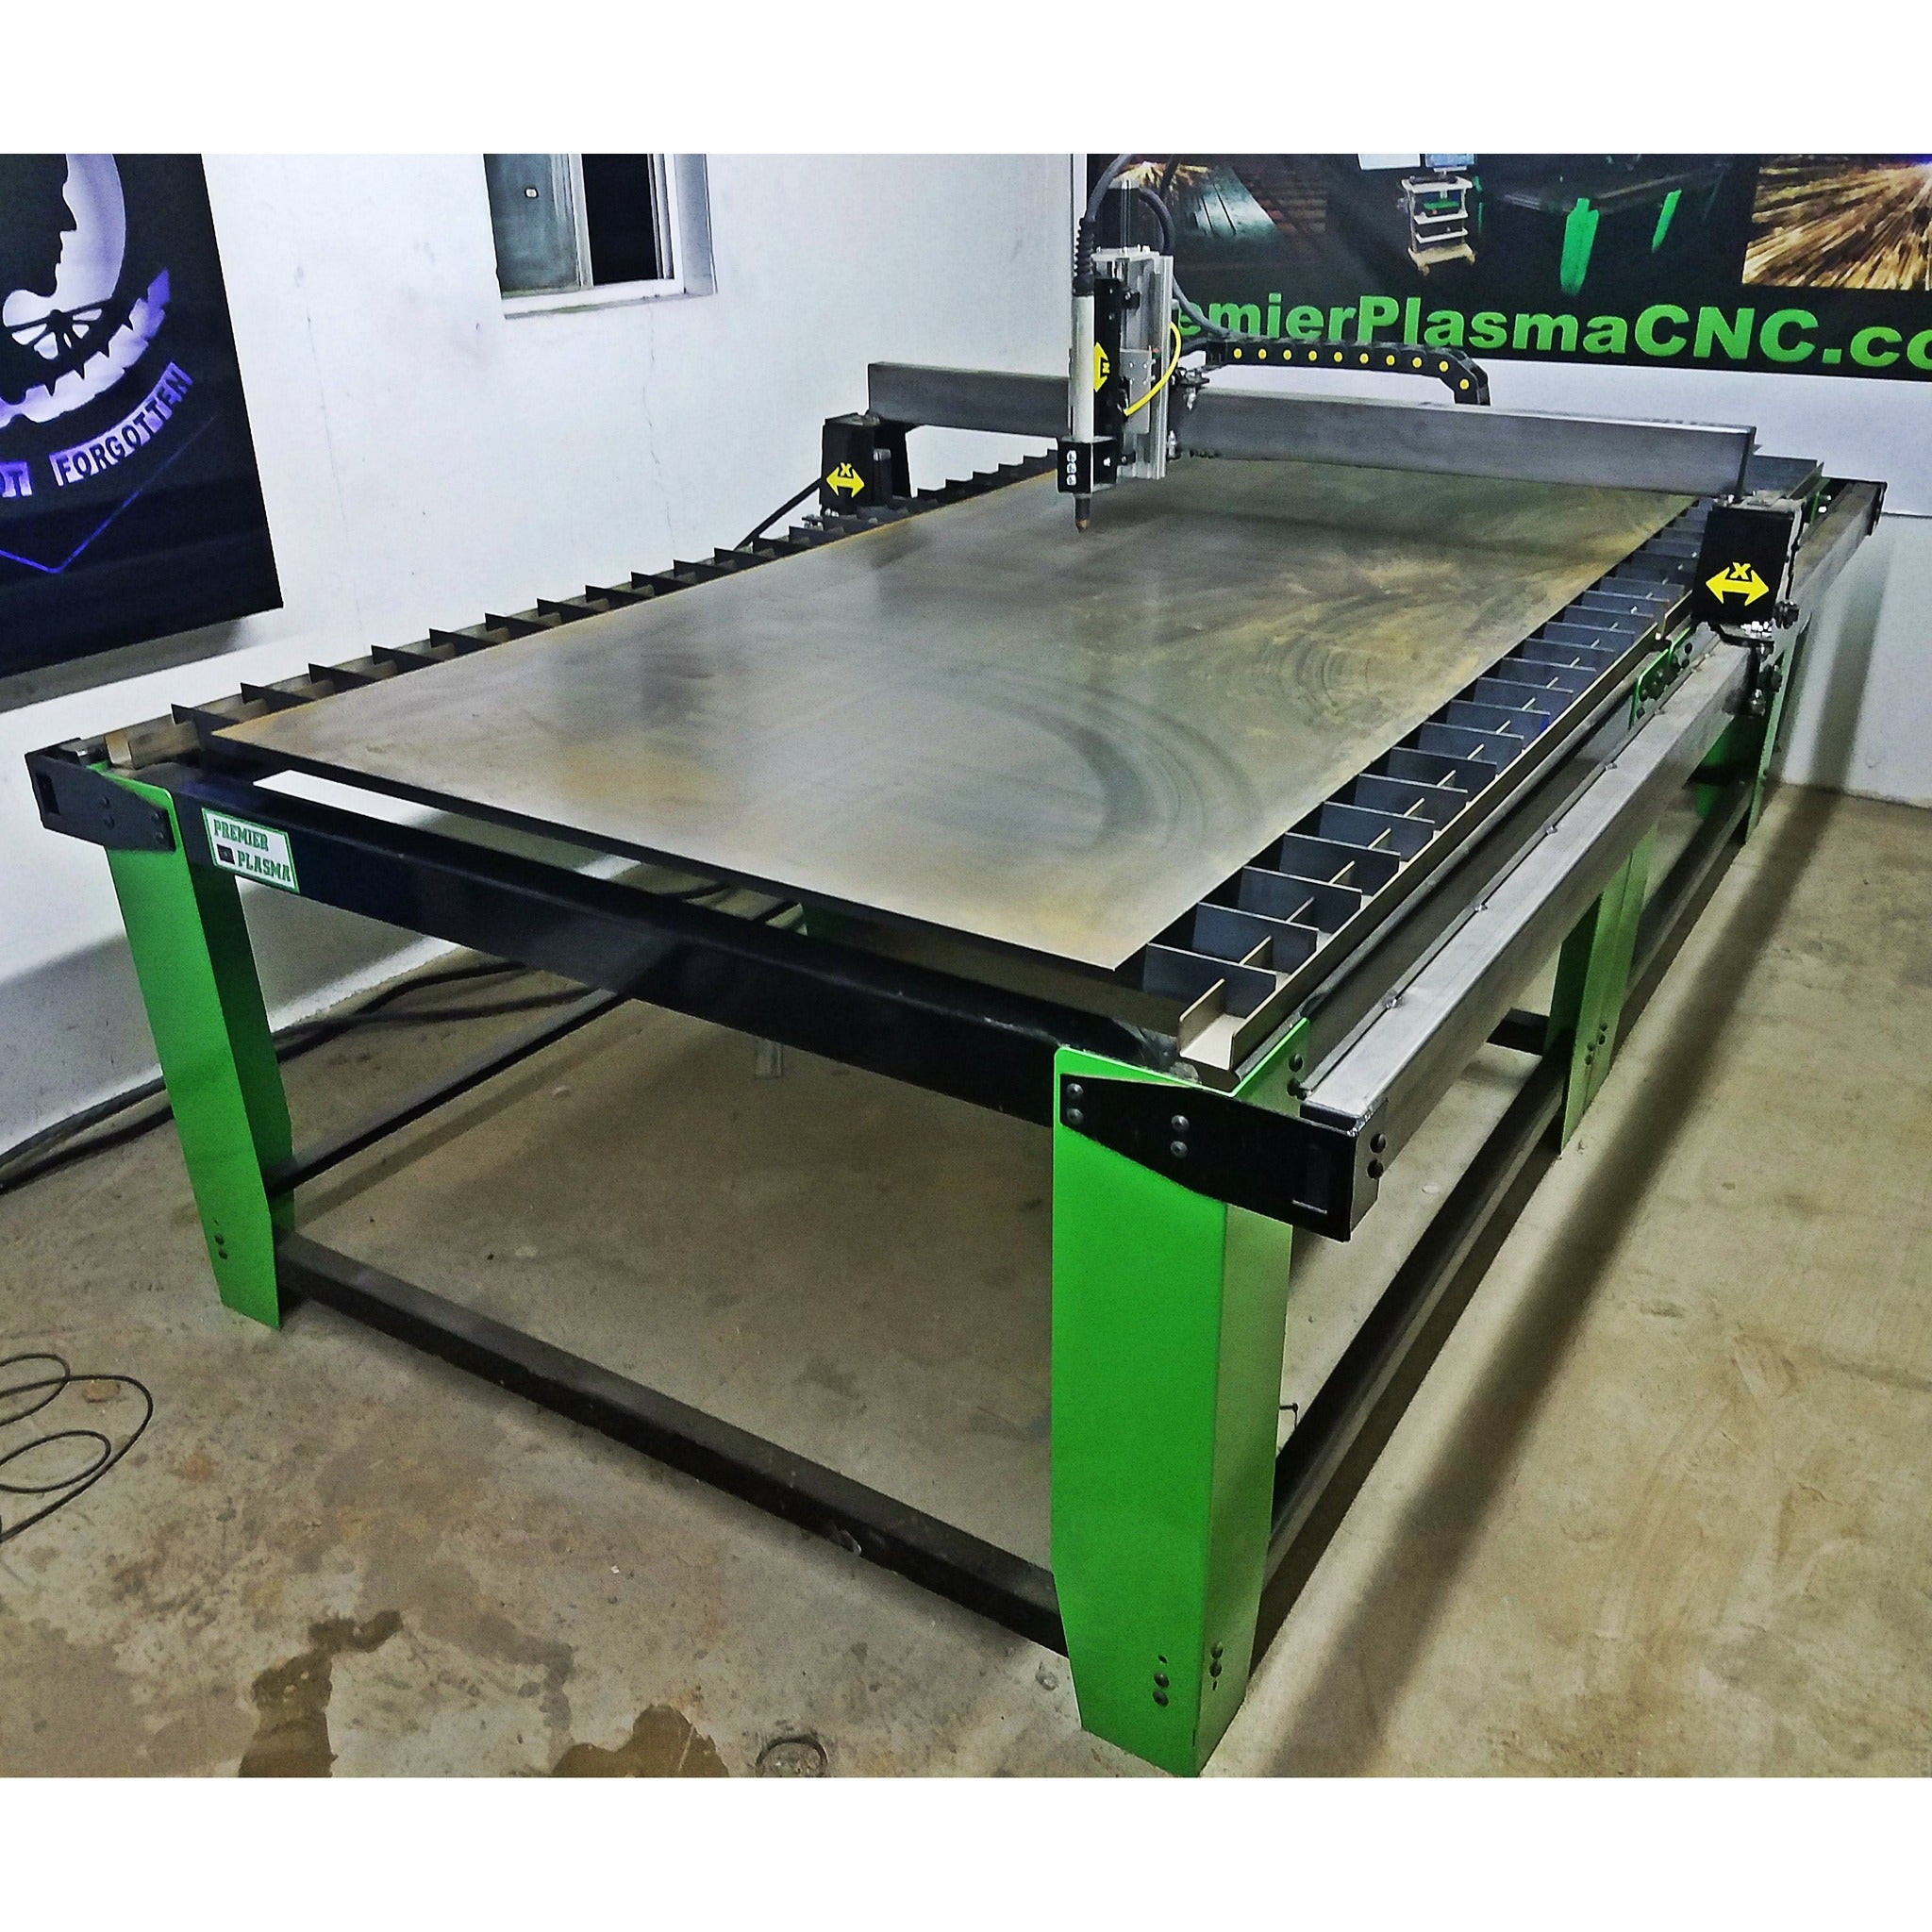 plasma cnc of legend whats machine advantages cutting blog disadvantages what and table s